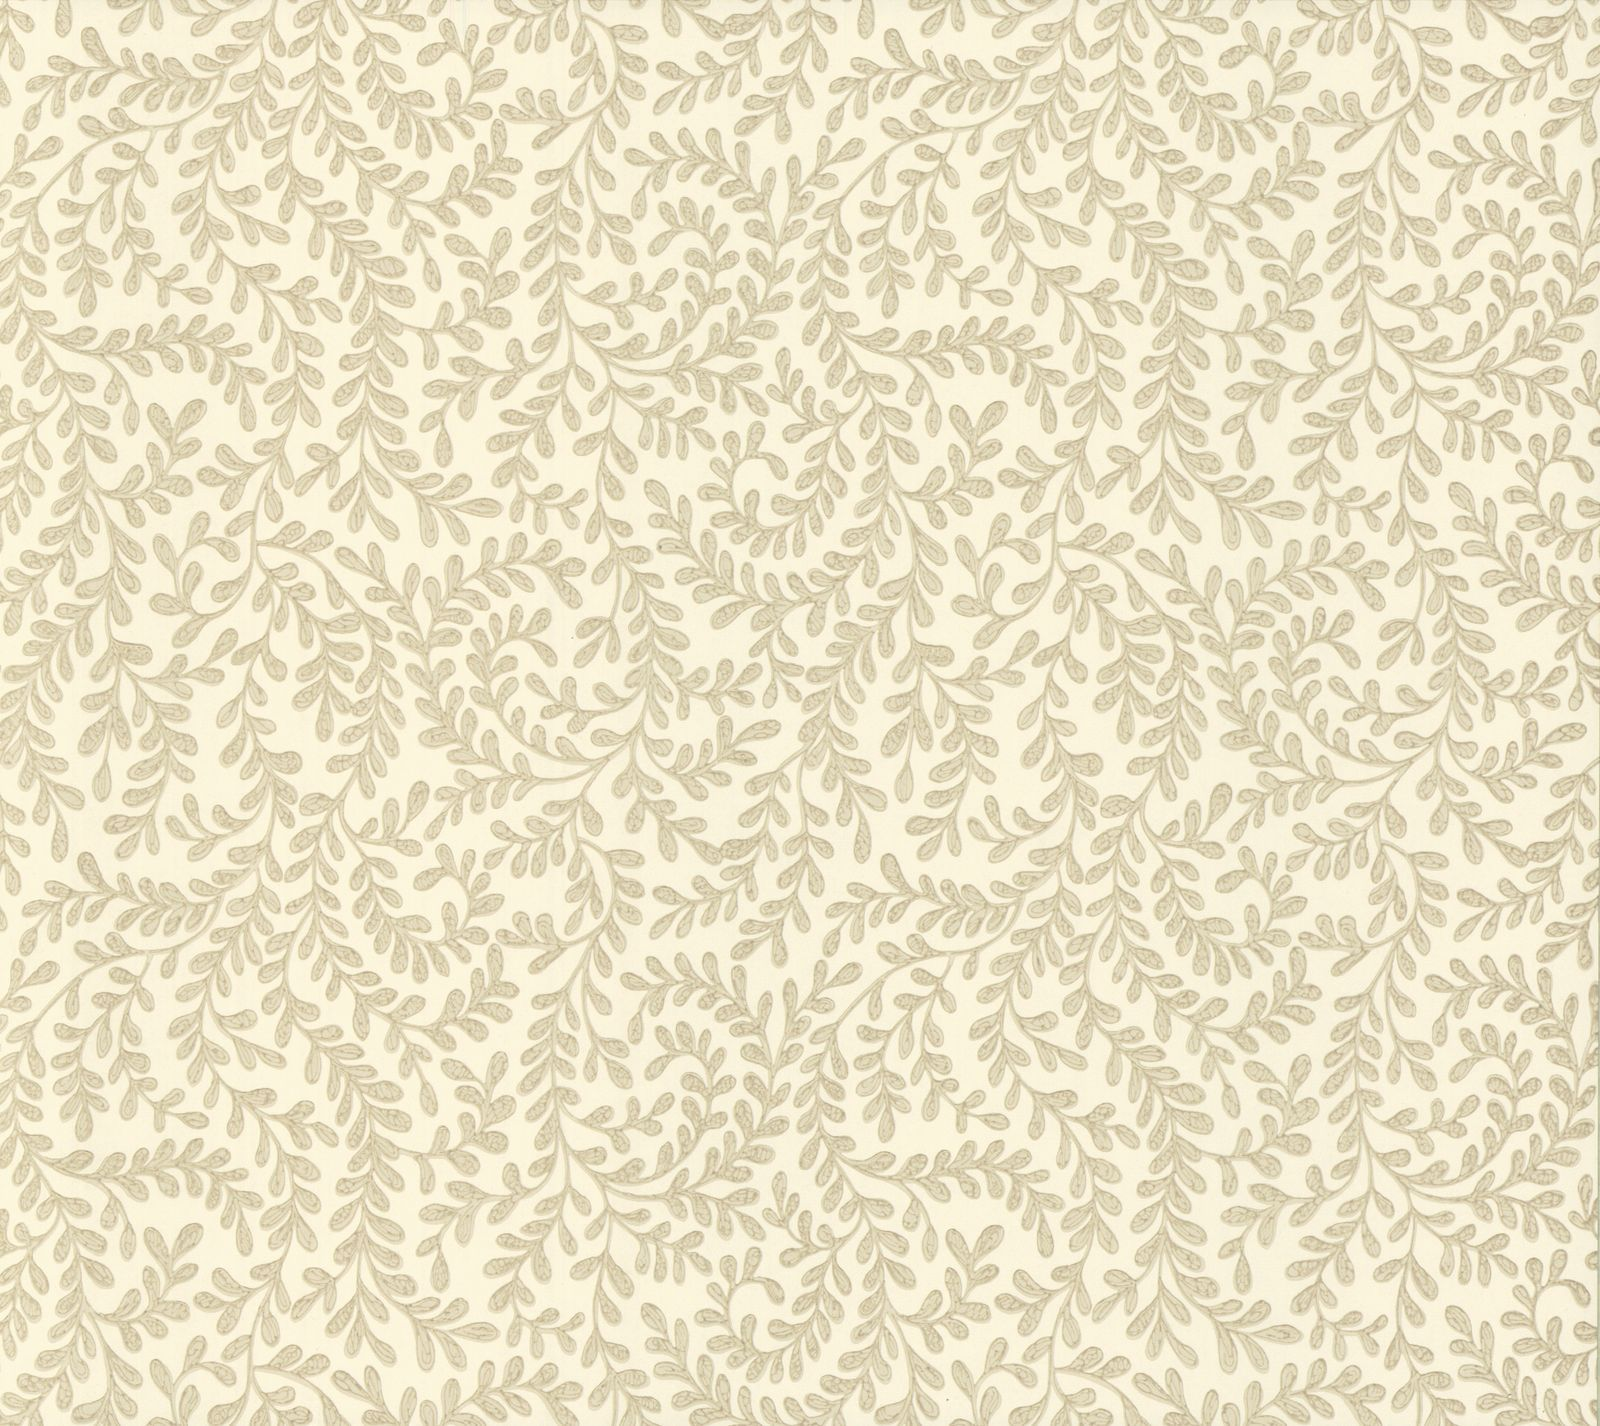 Tapetti 1838 Wallcoverings Audley beige 0,52x10,05 m